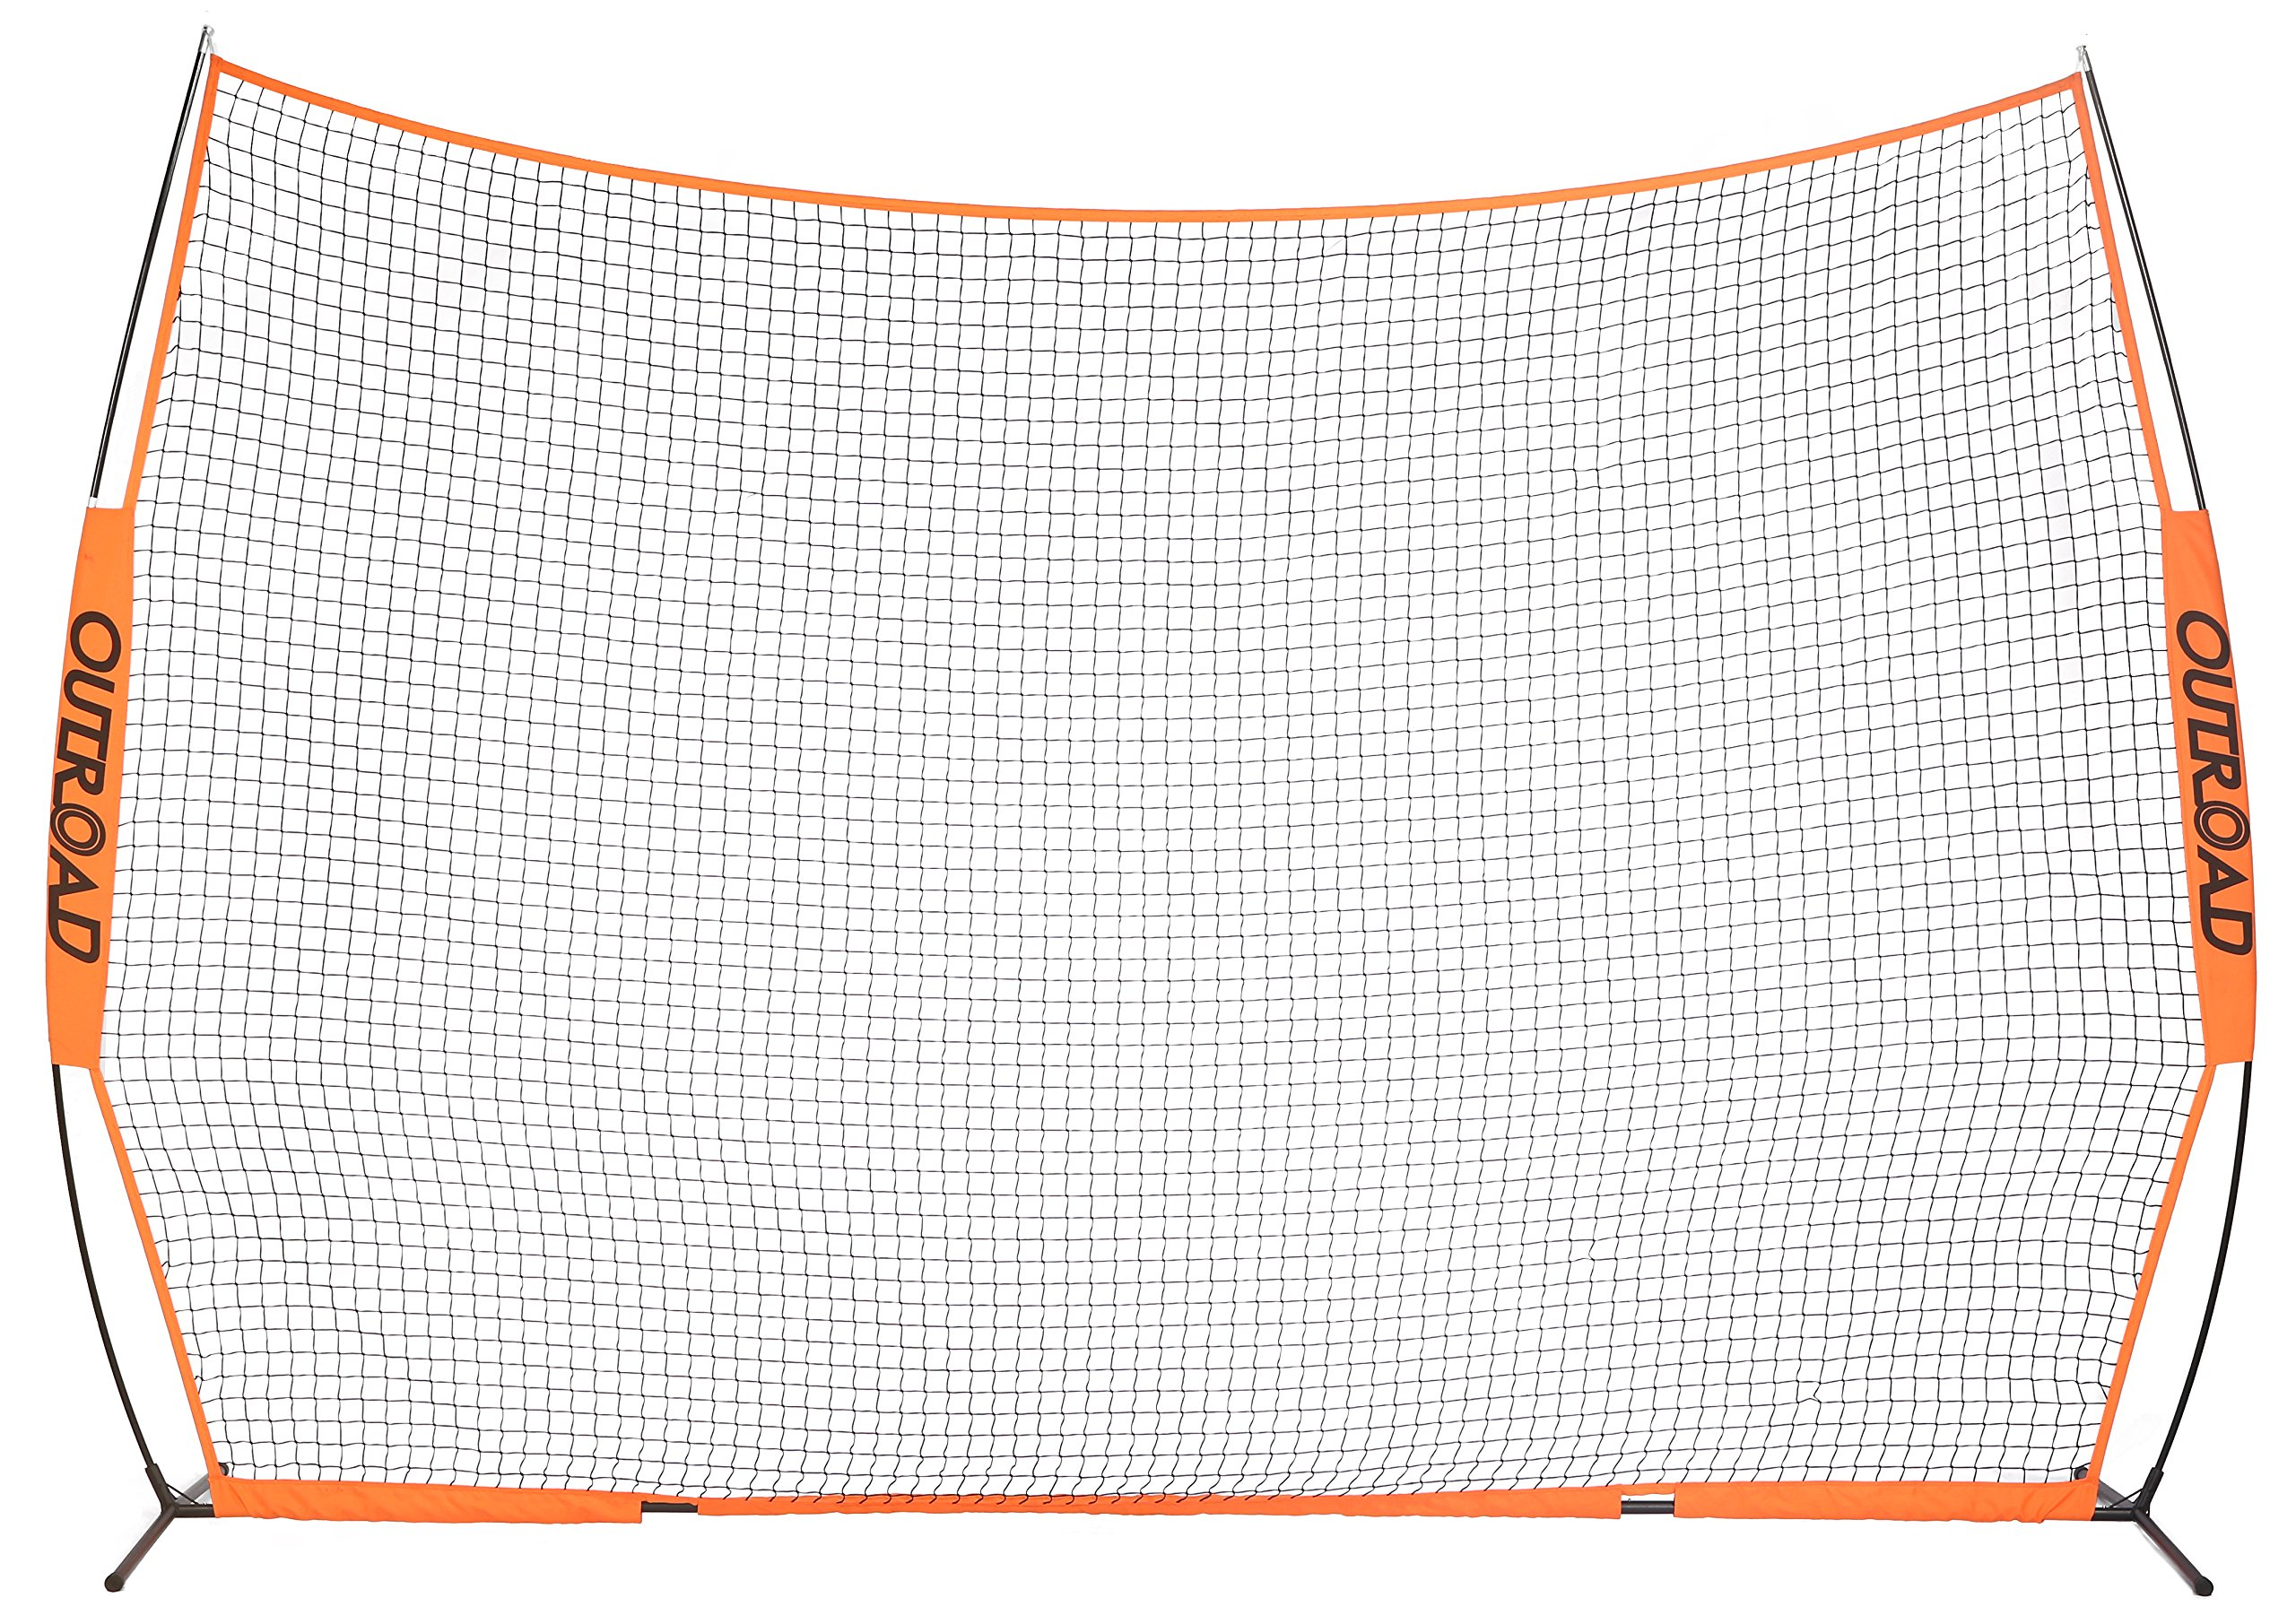 OUTROAD 12x9 FT Barrier Net - Portable Sports Barricade Practice Backstop Net w/Carry Bag